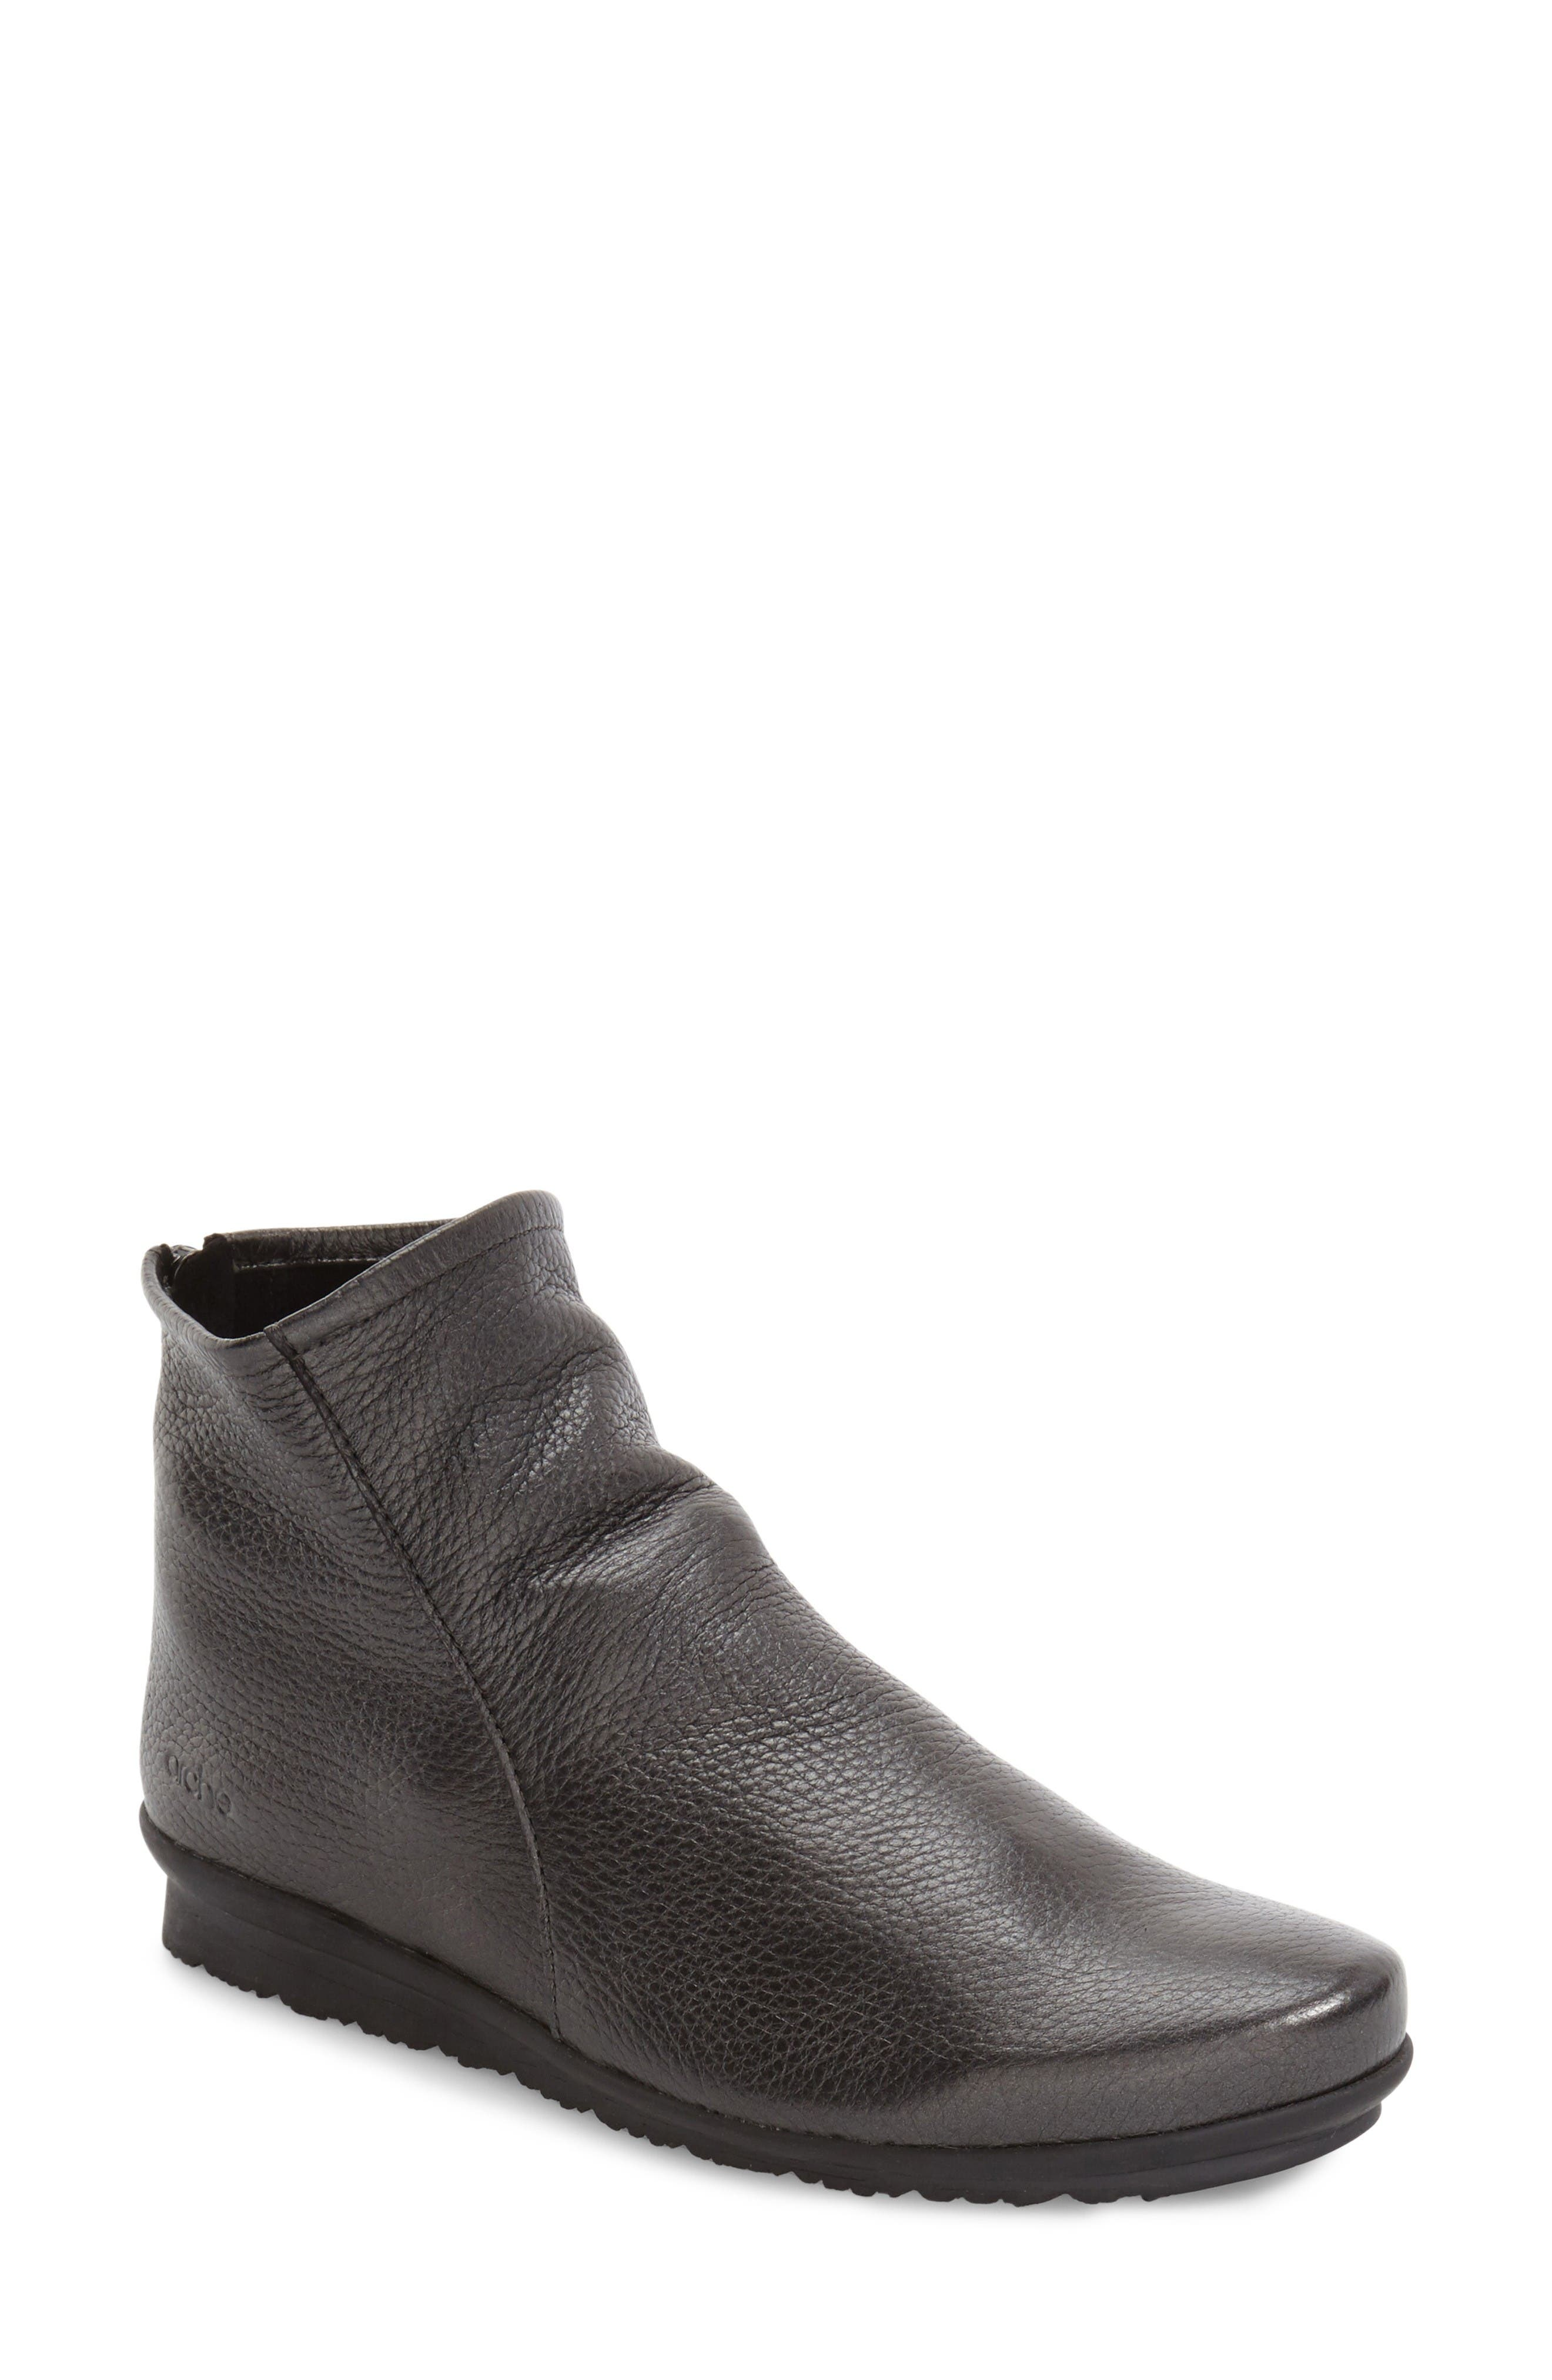 Arche 'Baryky' Boot